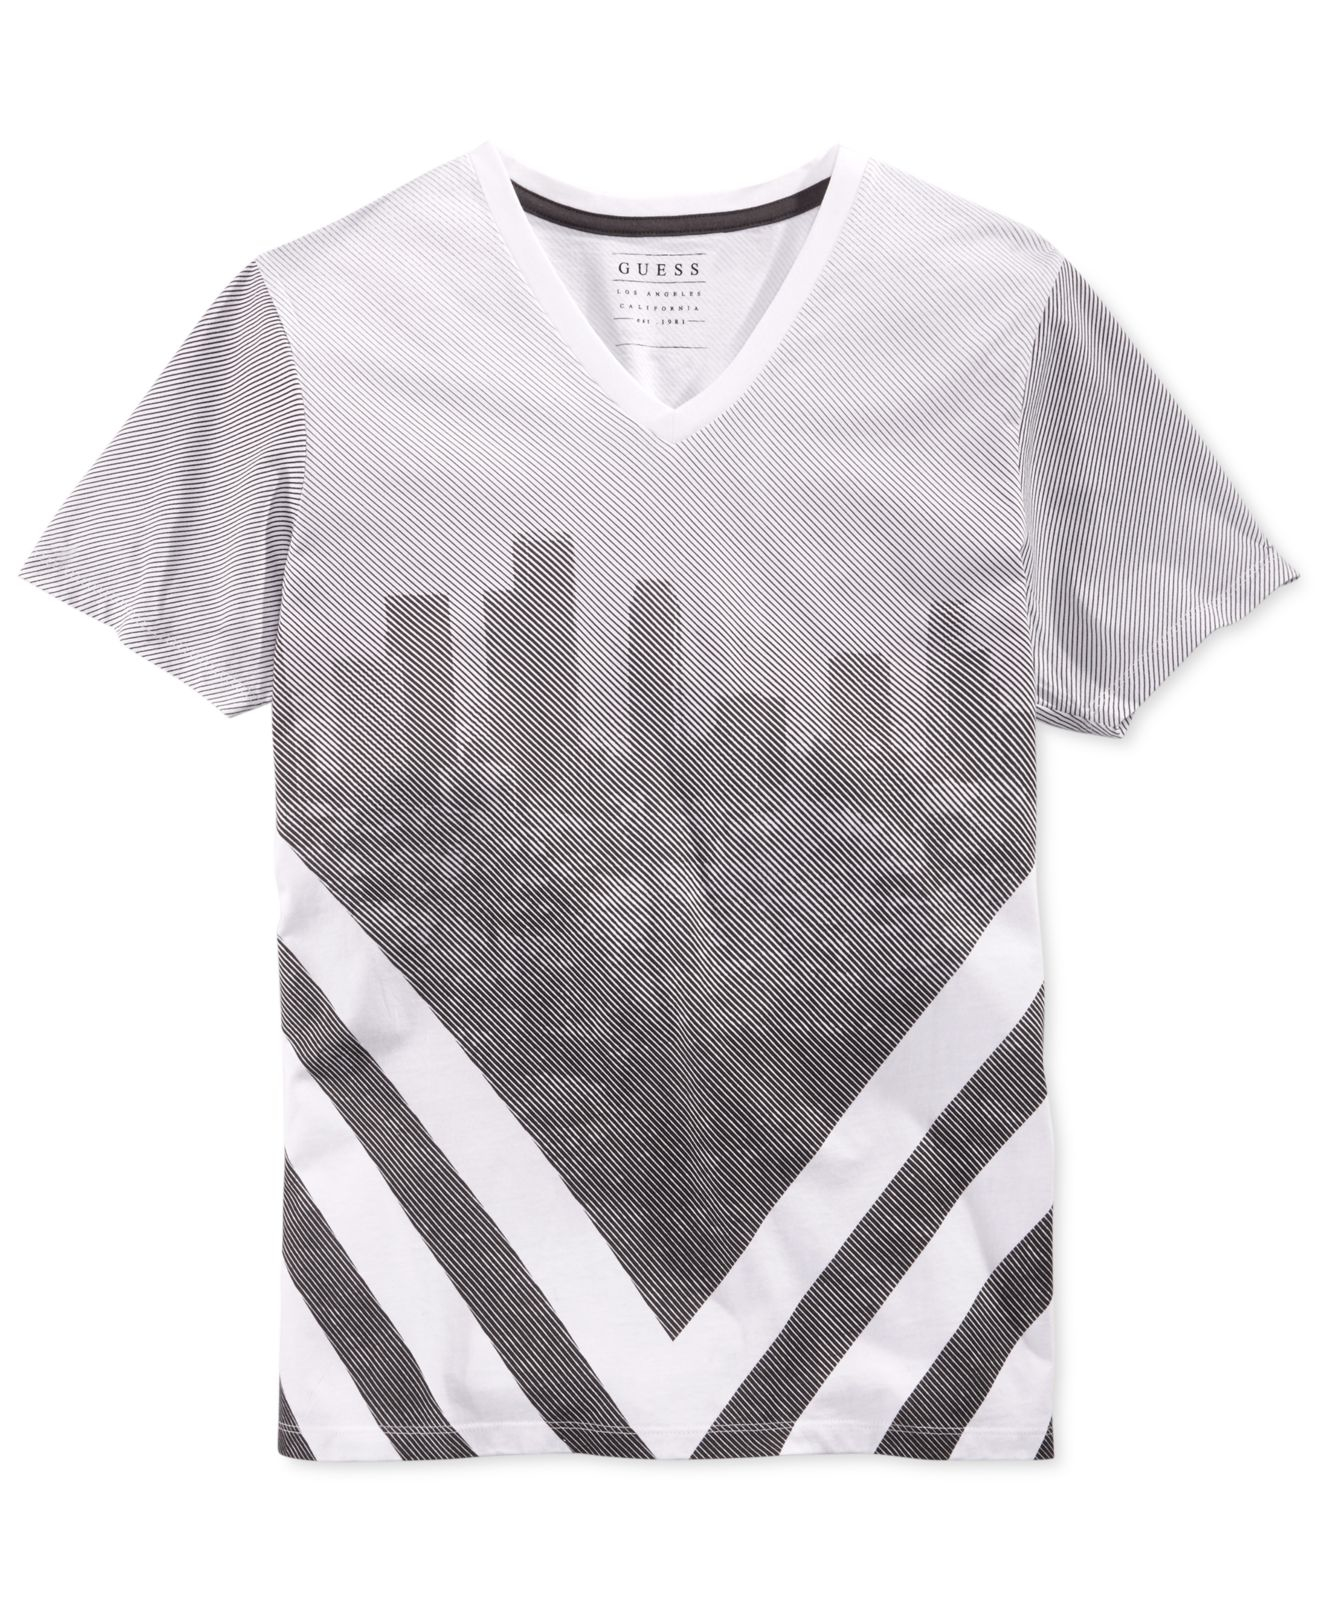 fe70022873c8 Guess Men's Chevron City Graphic-print V-neck T-shirt in White for ...